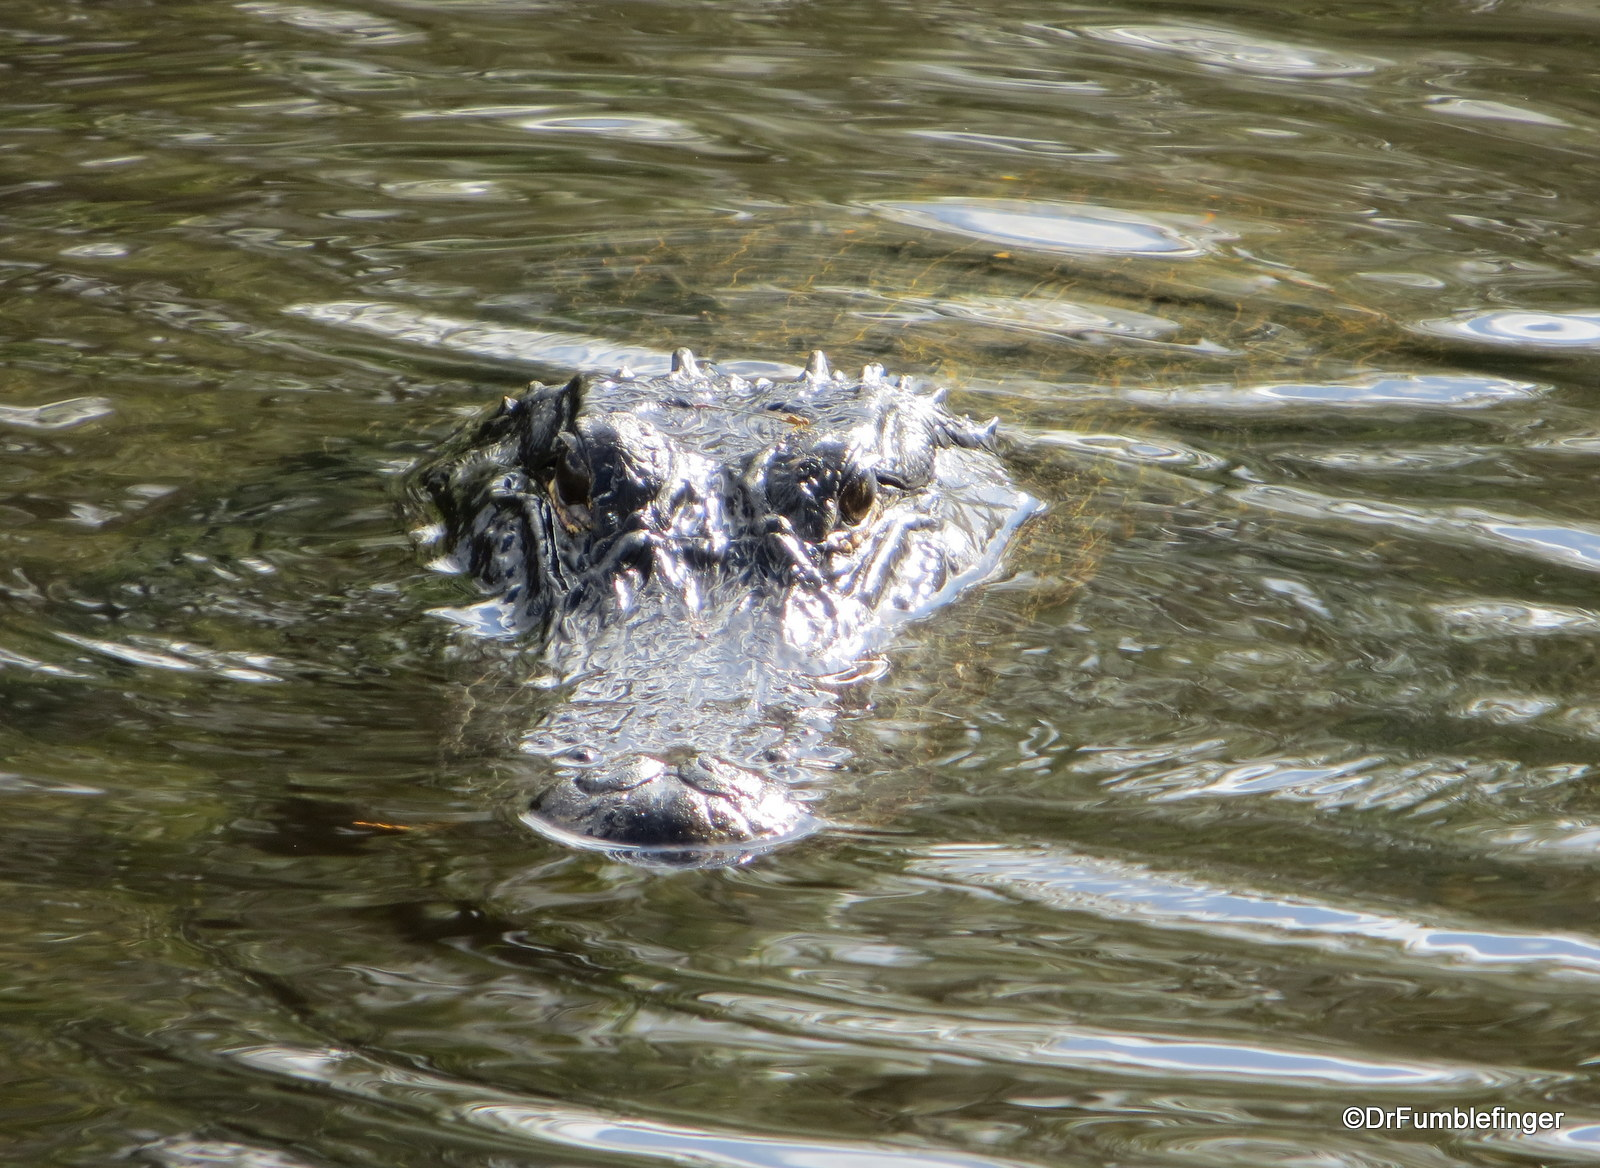 Alligator, Shark Valley, Everglades National Park. This one was following us as we walked